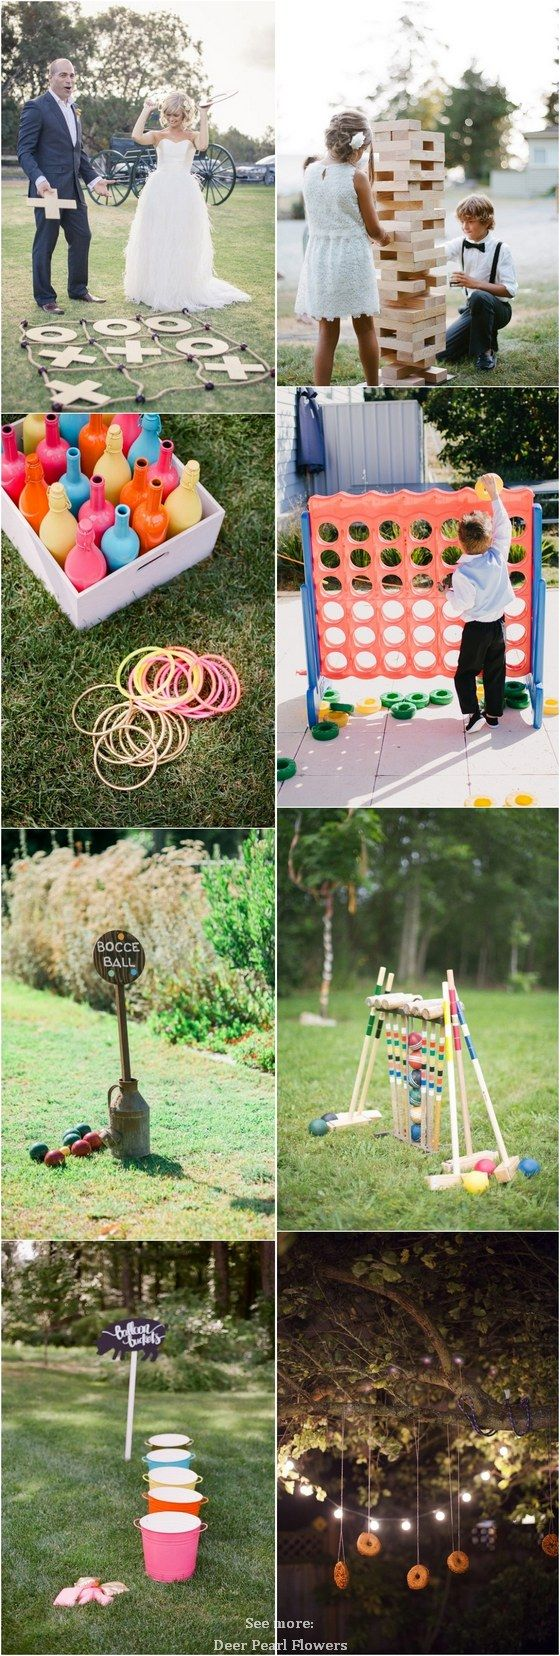 simple outdoor wedding ideas for summer%0A    Fun Outdoor Wedding Reception Lawn Game Ideas